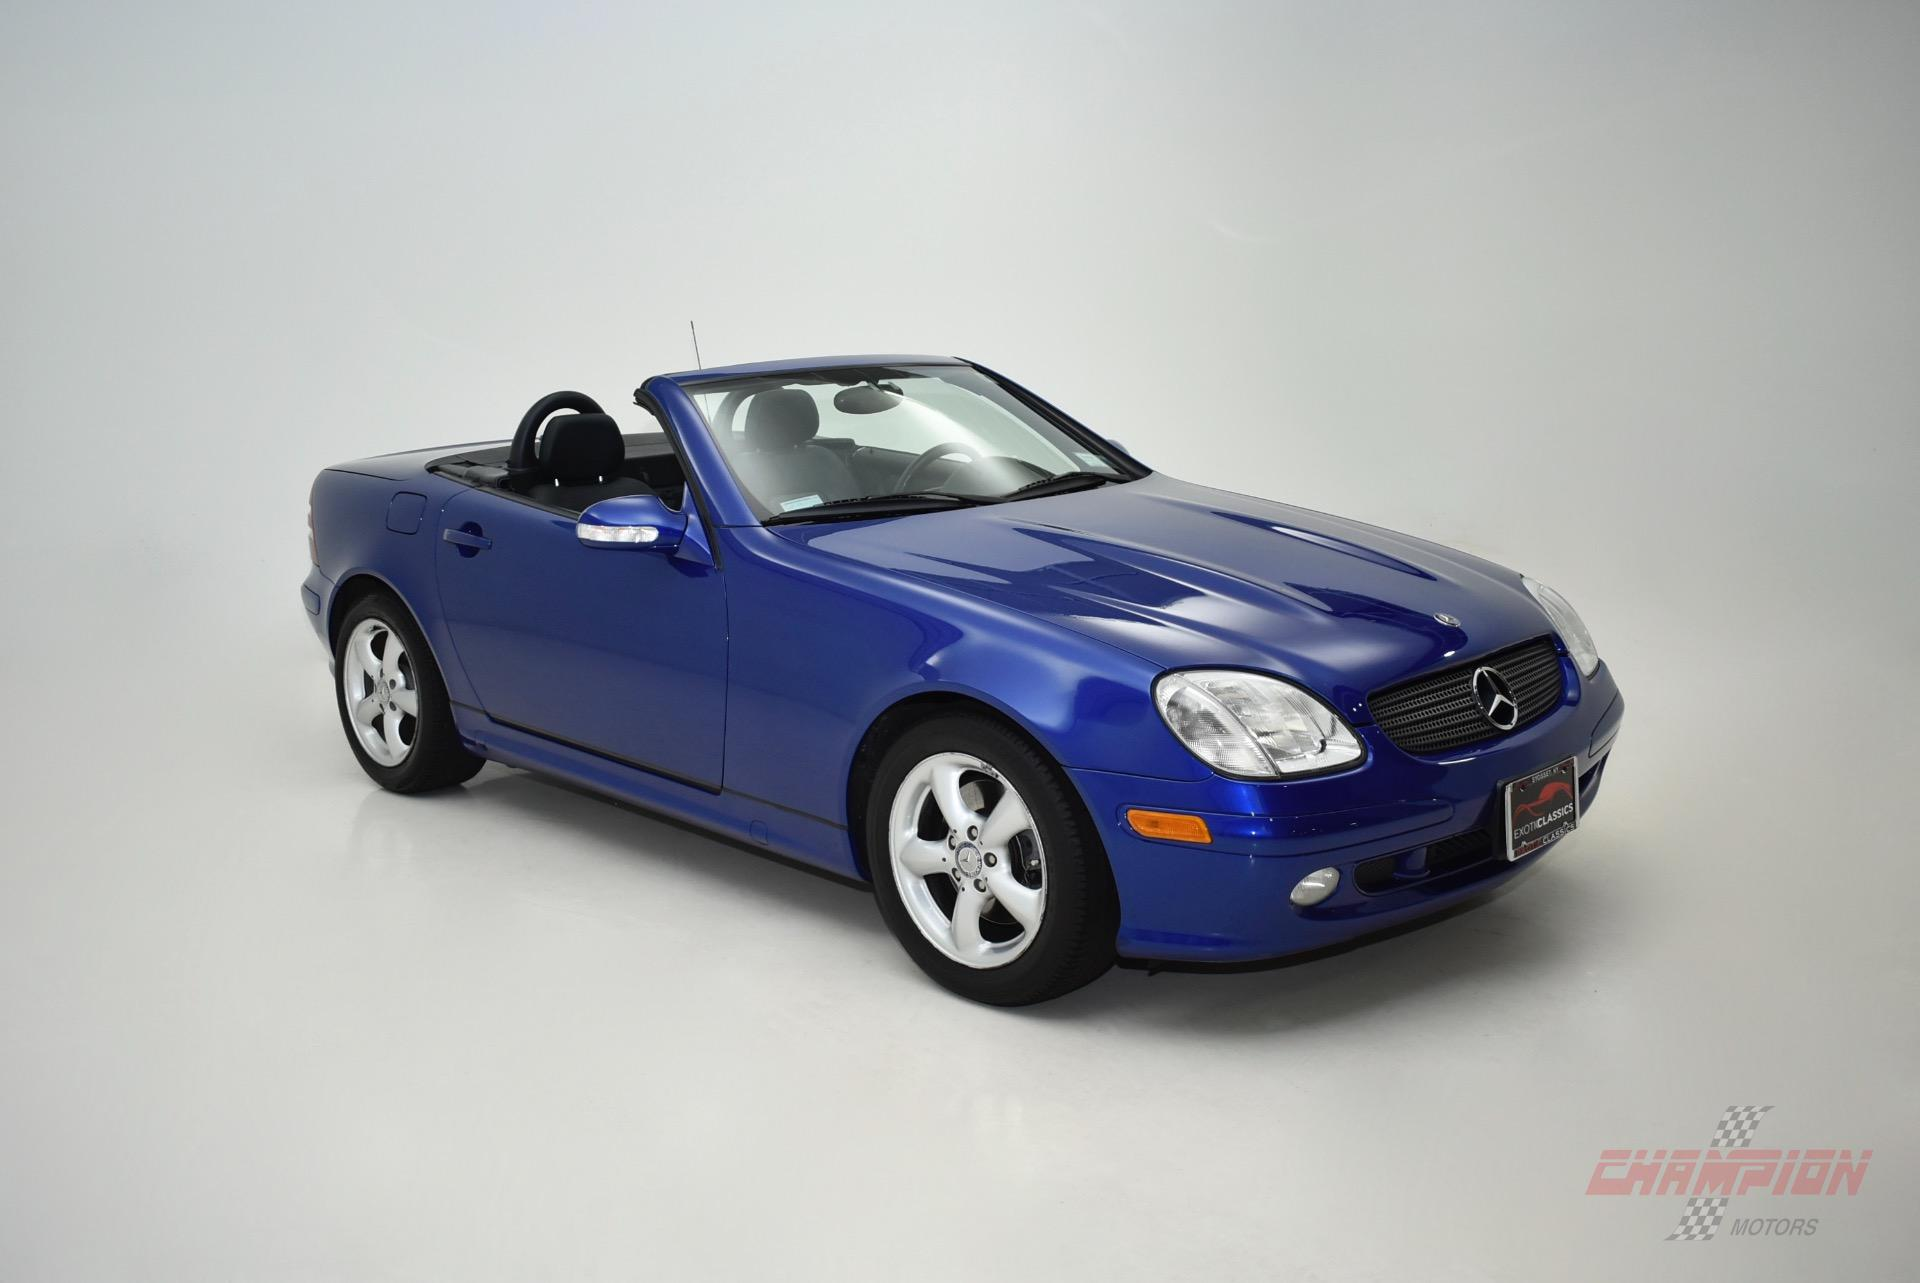 2001 mercedes benz slk slk 320 exotic and classic car dealership specializing in ferrari. Black Bedroom Furniture Sets. Home Design Ideas